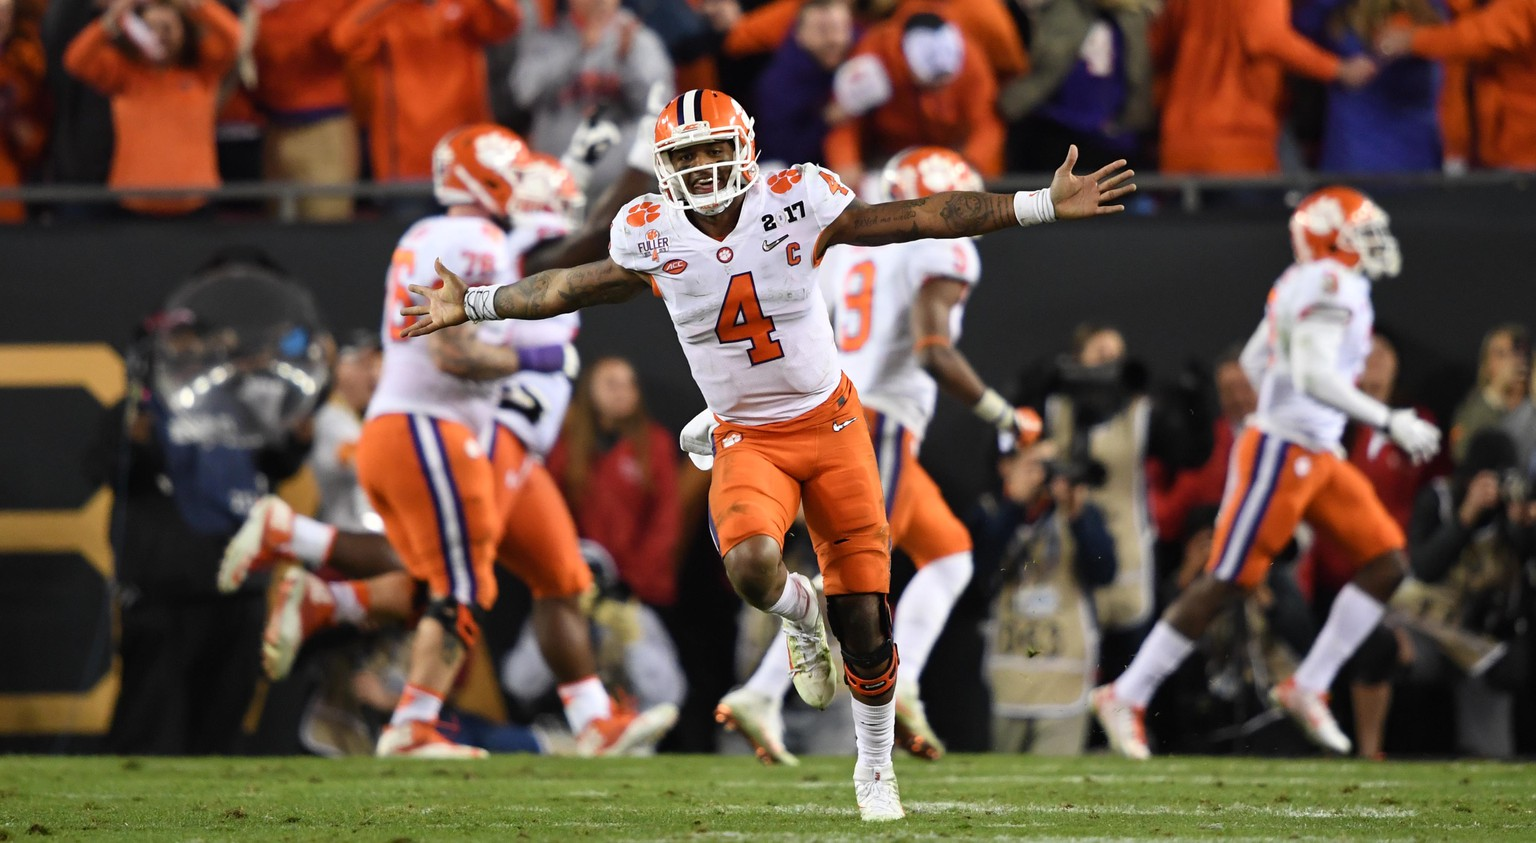 Jan 9, 2017; Tampa, FL, USA; Clemson Tigers quarterback Deshaun Watson (4) celebrates during the fourth quarter against the Alabama Crimson Tide in the 2017 College Football Playoff National Championship Game at Raymond James Stadium. Mandatory Credit: John David Mercer-USA TODAY Sports